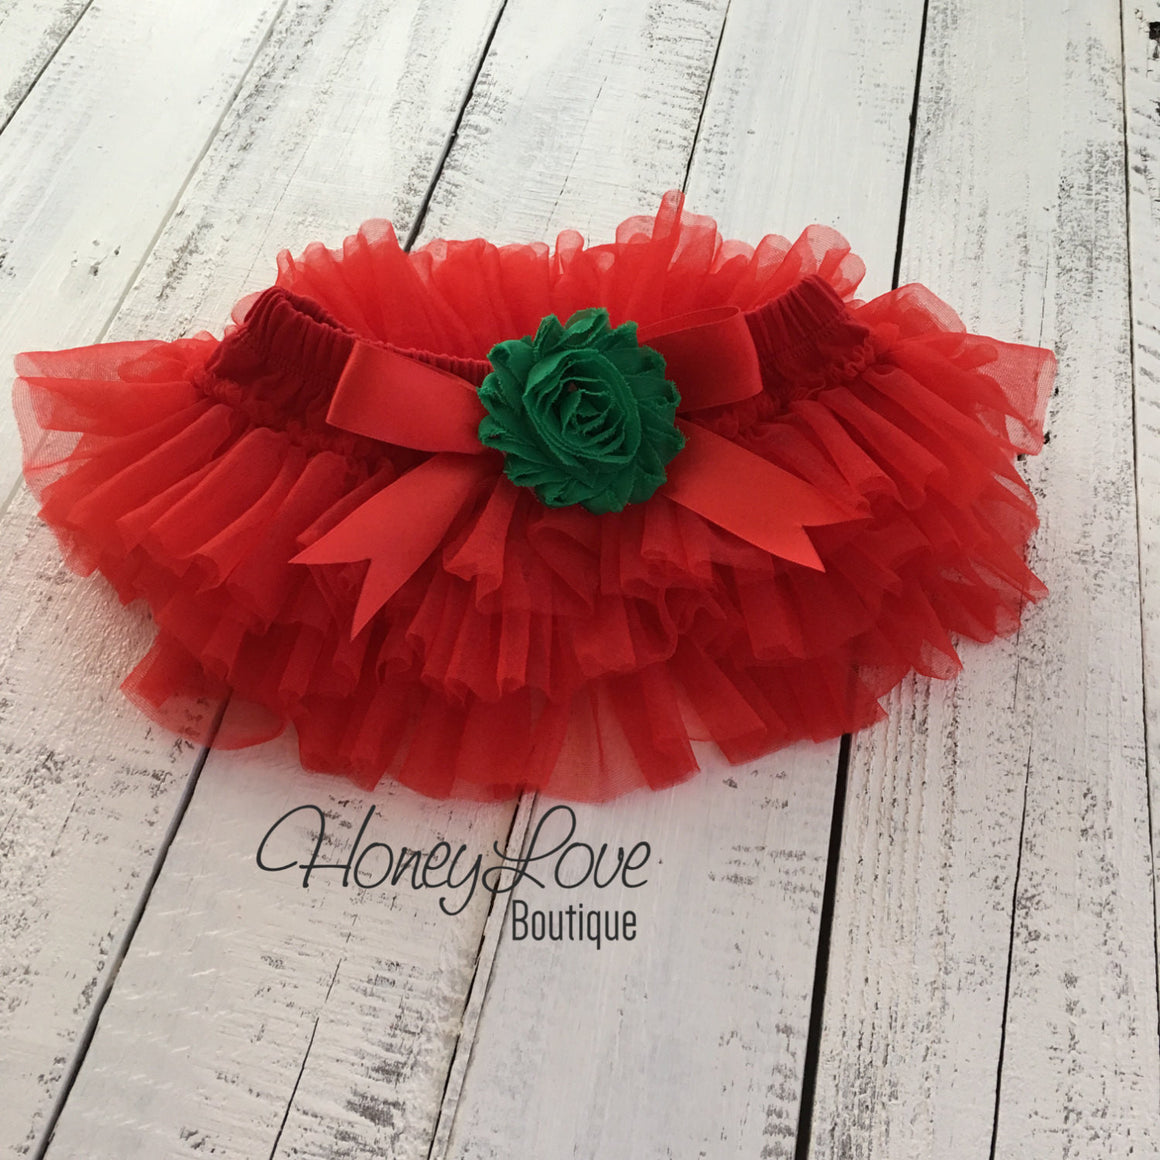 Red/Green Embellished tutu skirt bloomers and Gold/Silver glitter headband